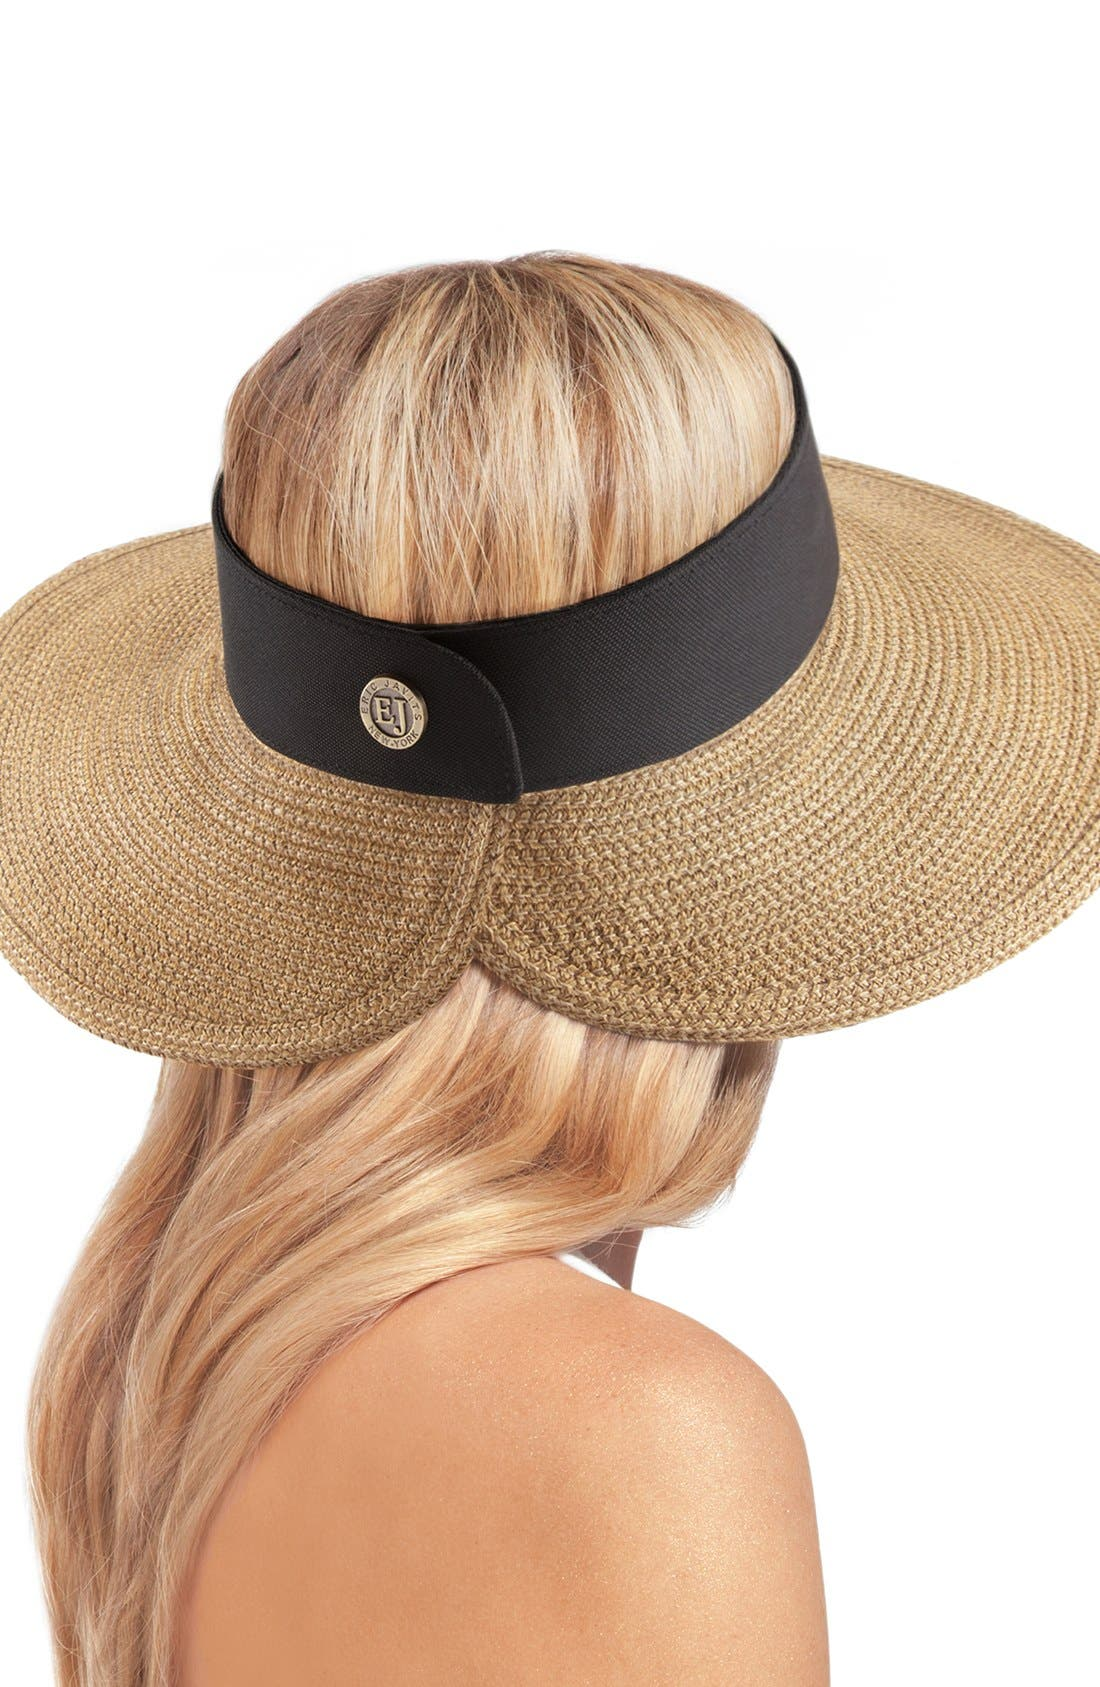 'Squishee<sup>®</sup> Halo' Hat,                             Alternate thumbnail 2, color,                             Natural/ Black